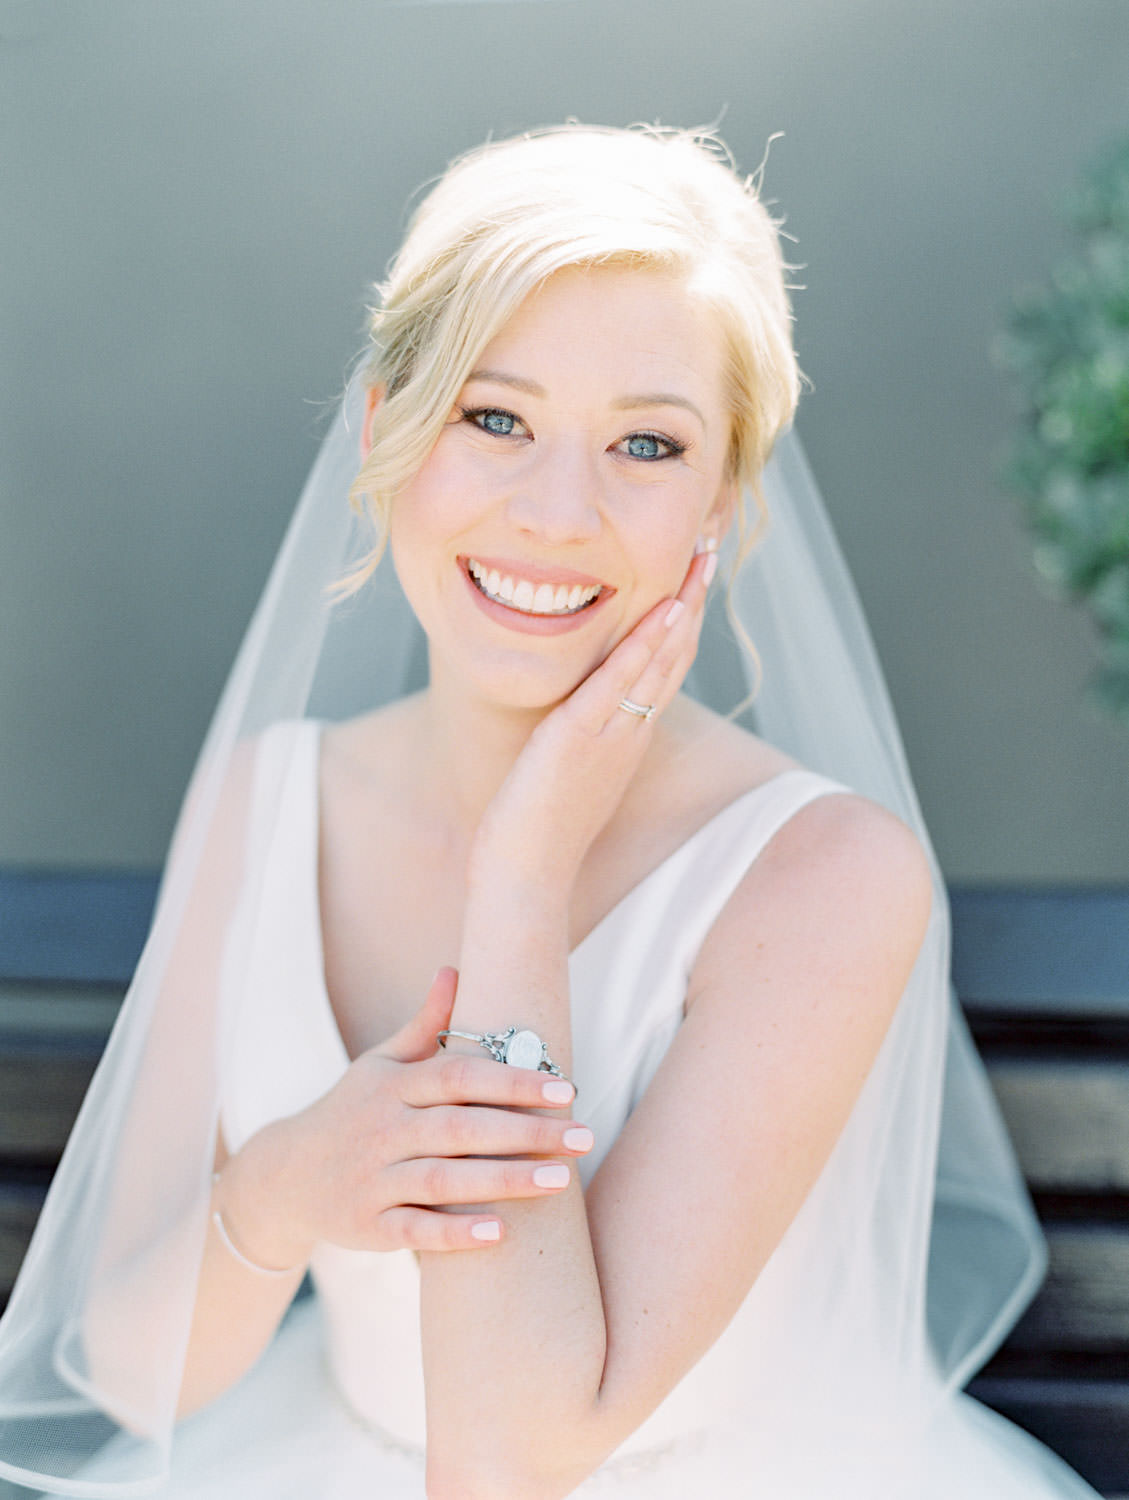 Bride in Stella York gown and veil for a classic bridal portrait. Bridal updo with hair loose and curled in front. San Diego wedding shot on film by Cavin Elizabeth Photography